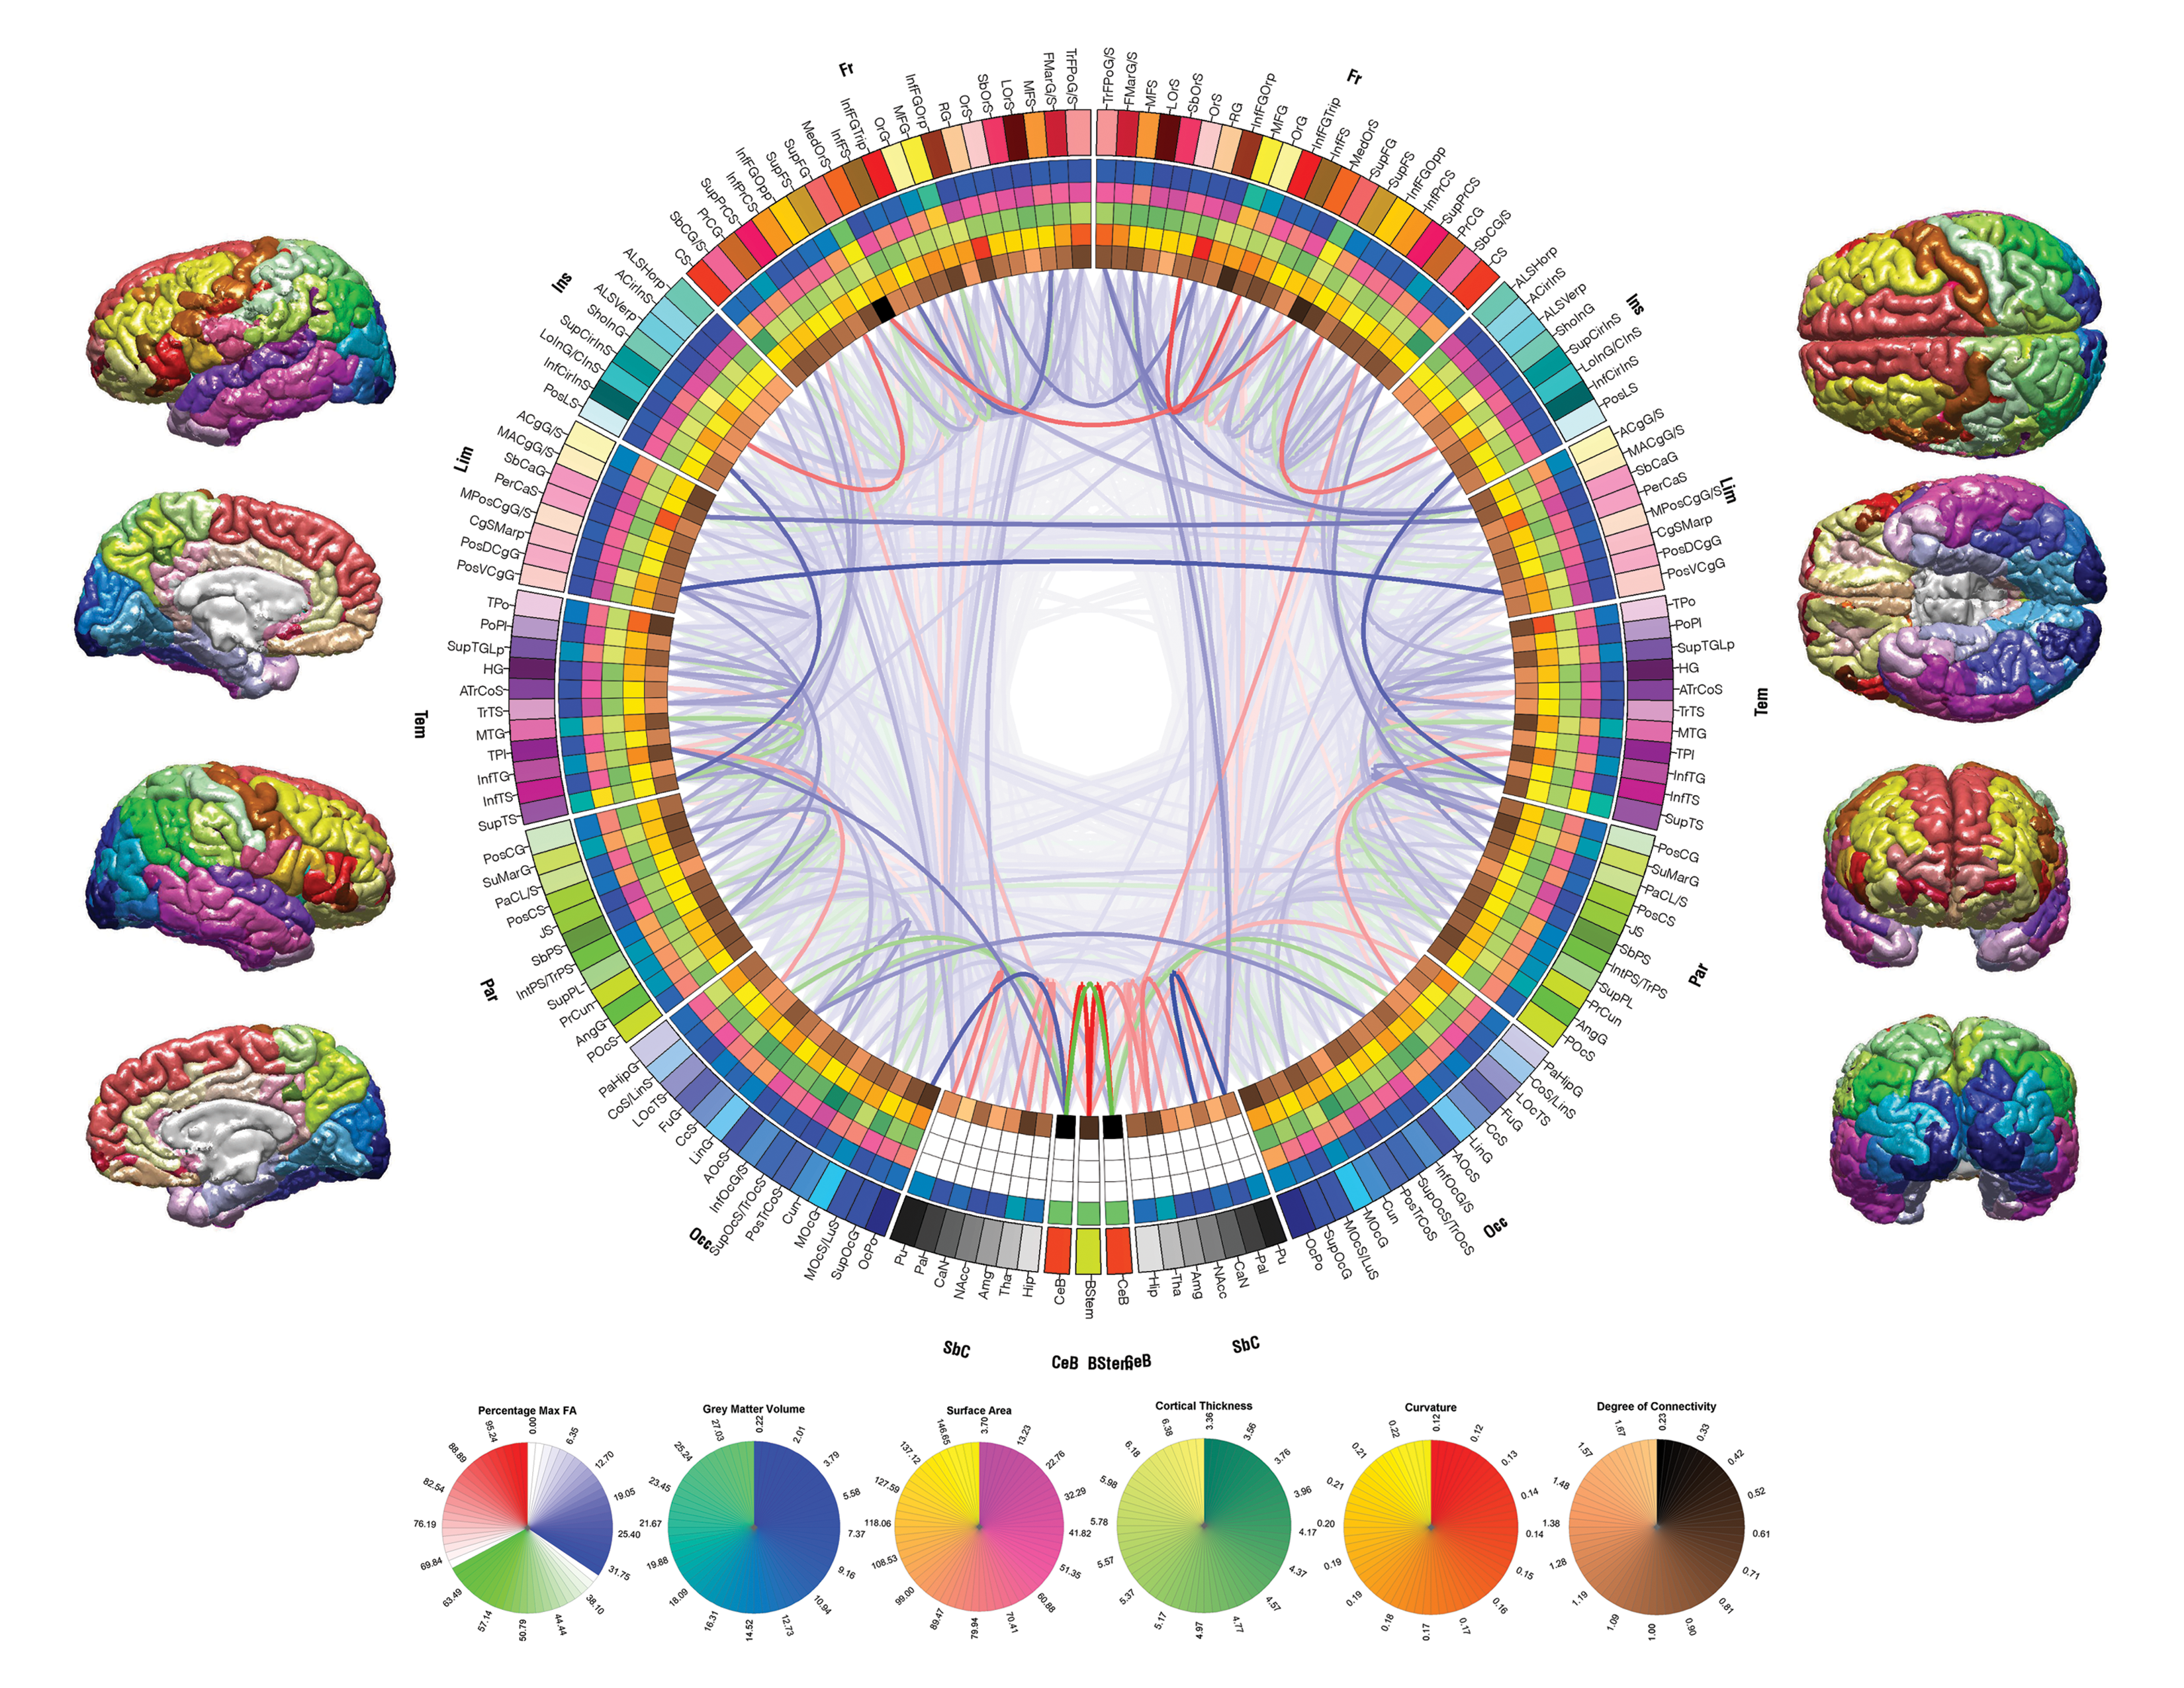 Mapping Morphometry and Connectedness of the Human Brain